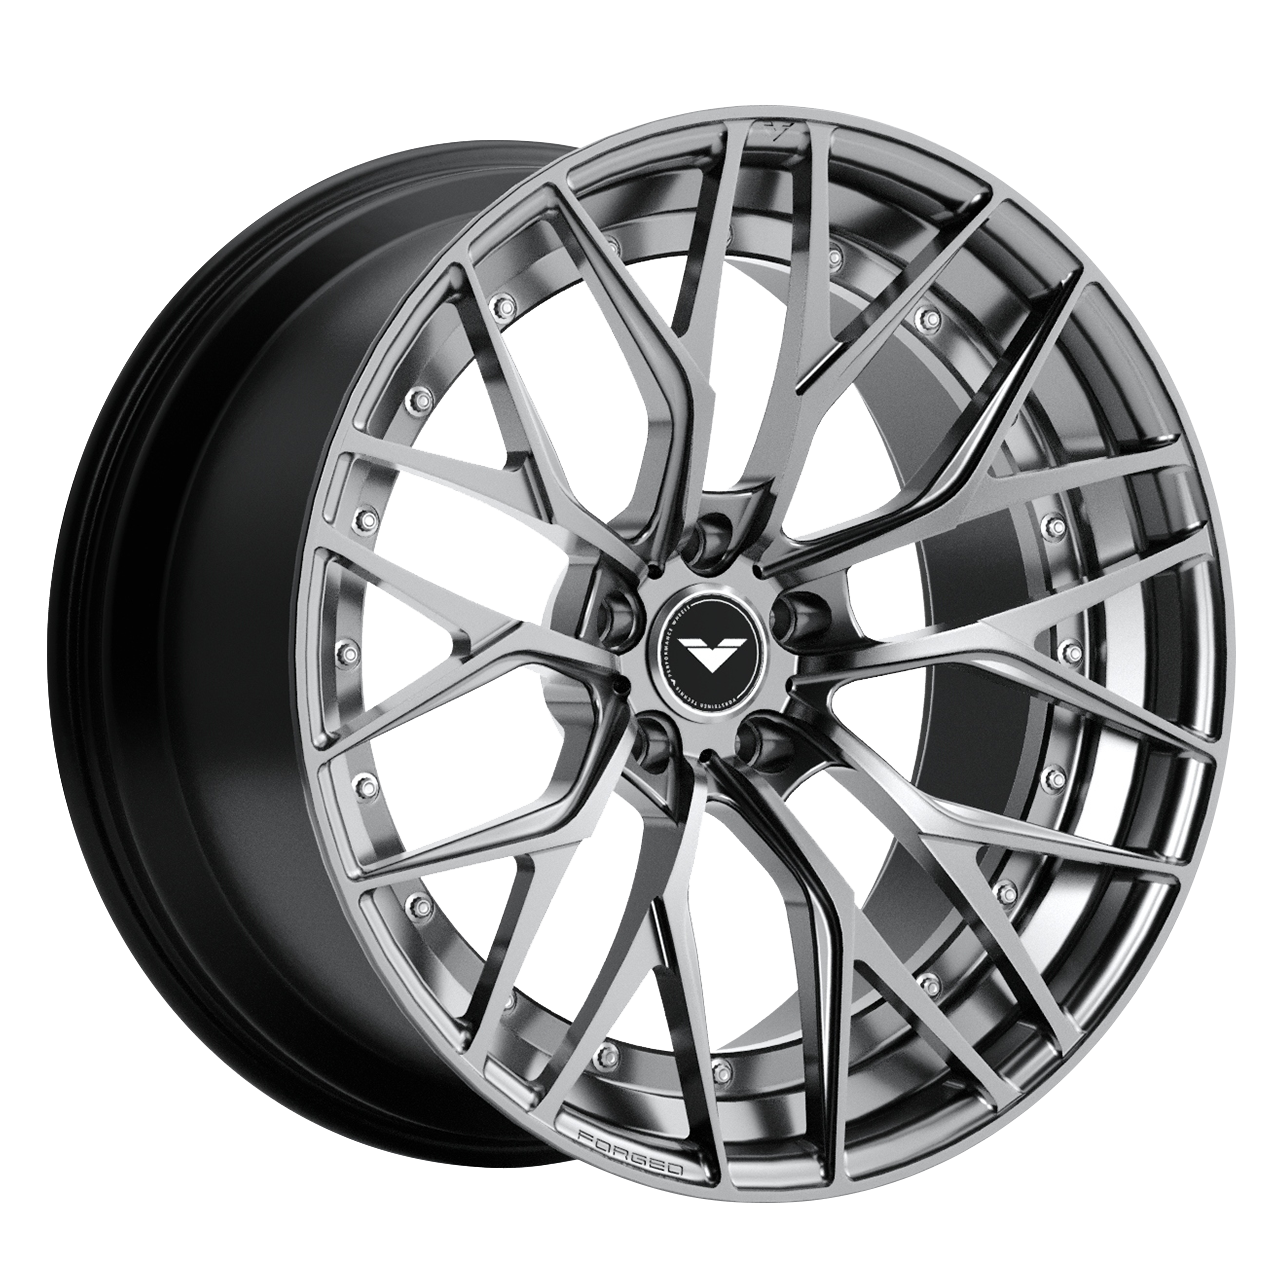 Vorsteiner Nero Forged VFN 503 (2-Piece Forged Series)